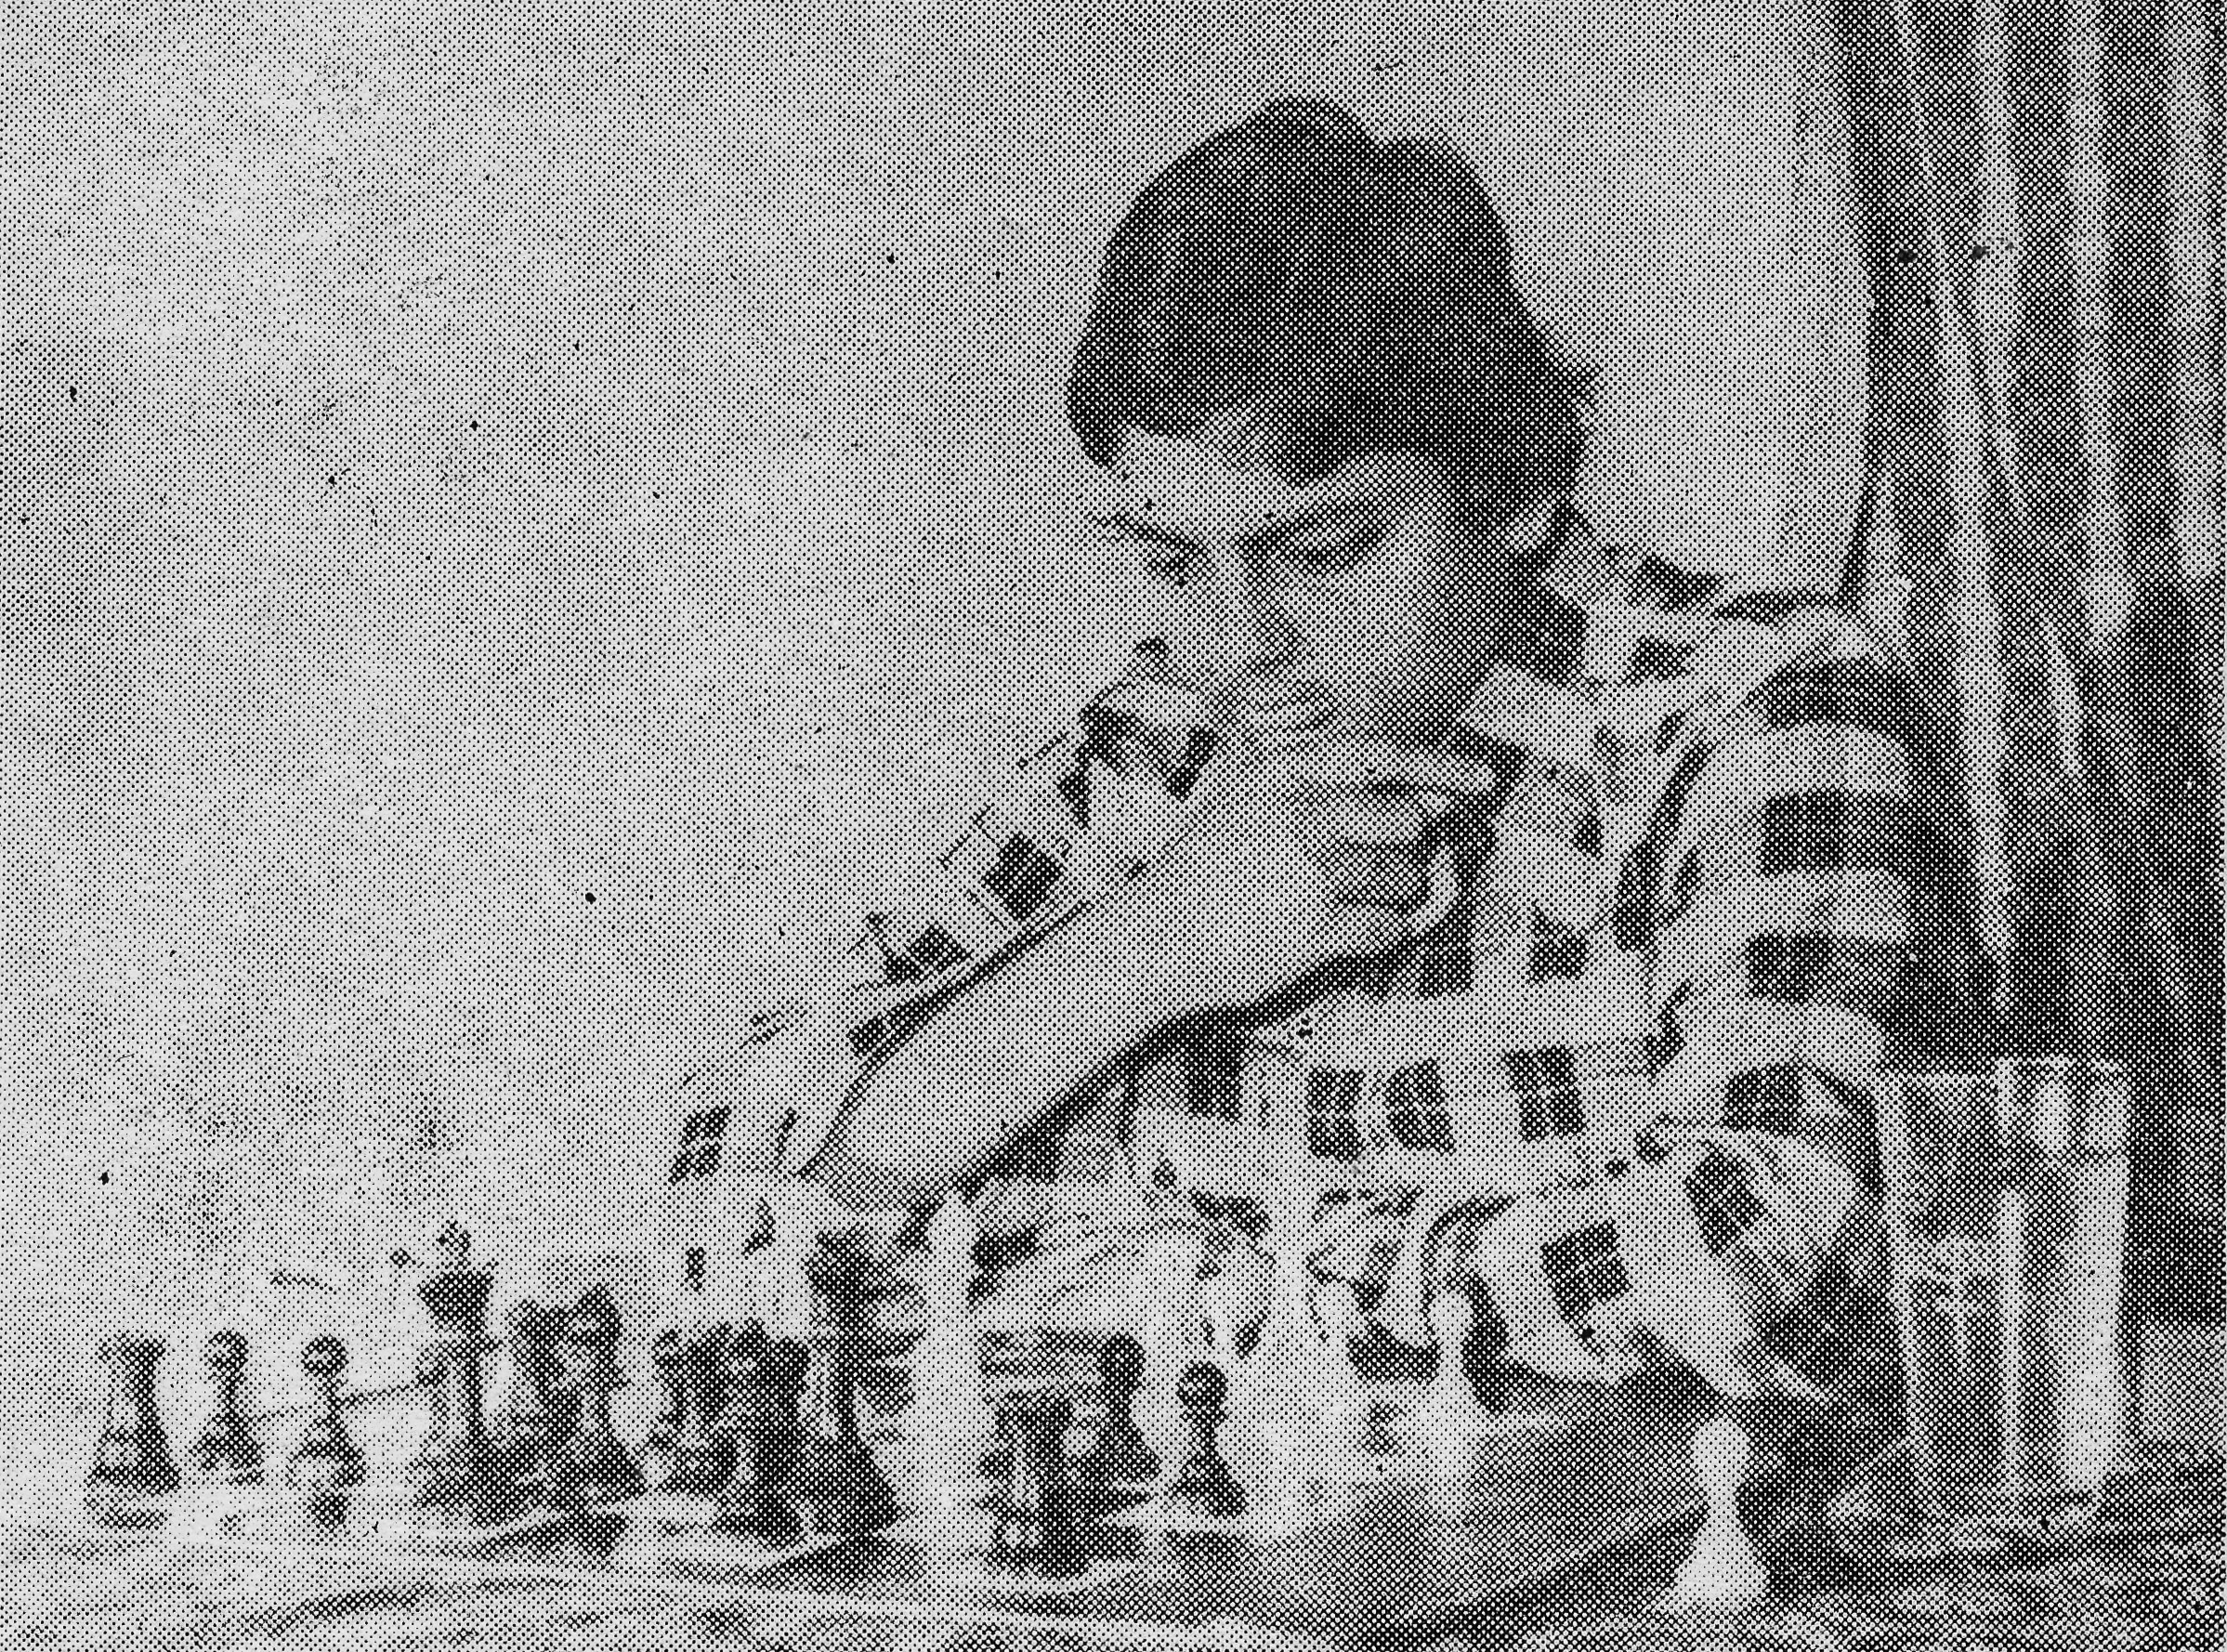 An early image of Vaidyanathan Ravikumar from page 81 of Ulf Andersson's Decisive Games